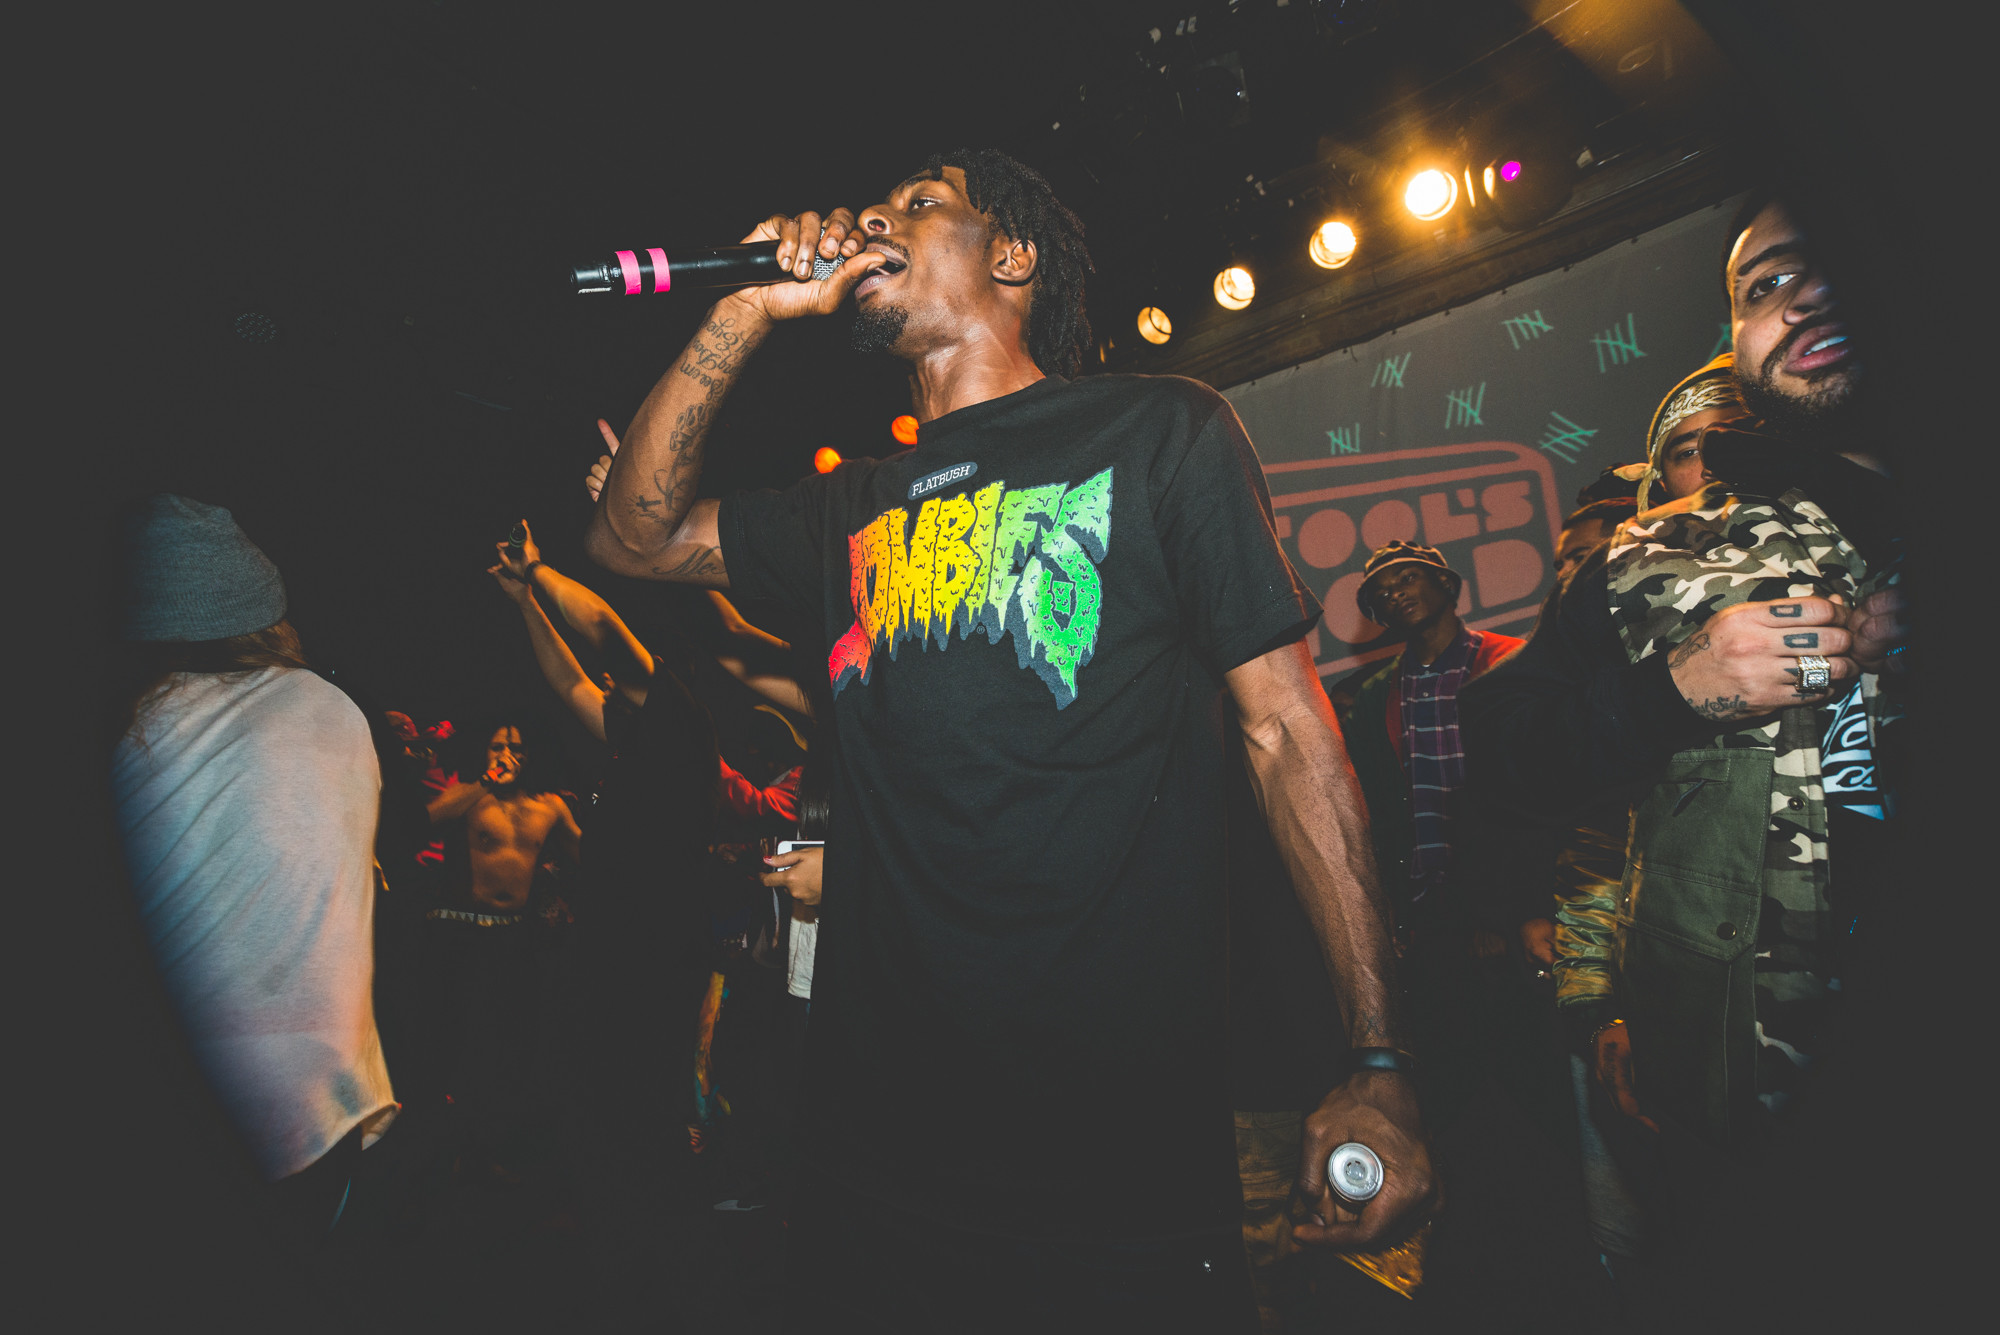 FLATBUSH ZOMBIES WALLPAPERS FREE Wallpapers & Background images .